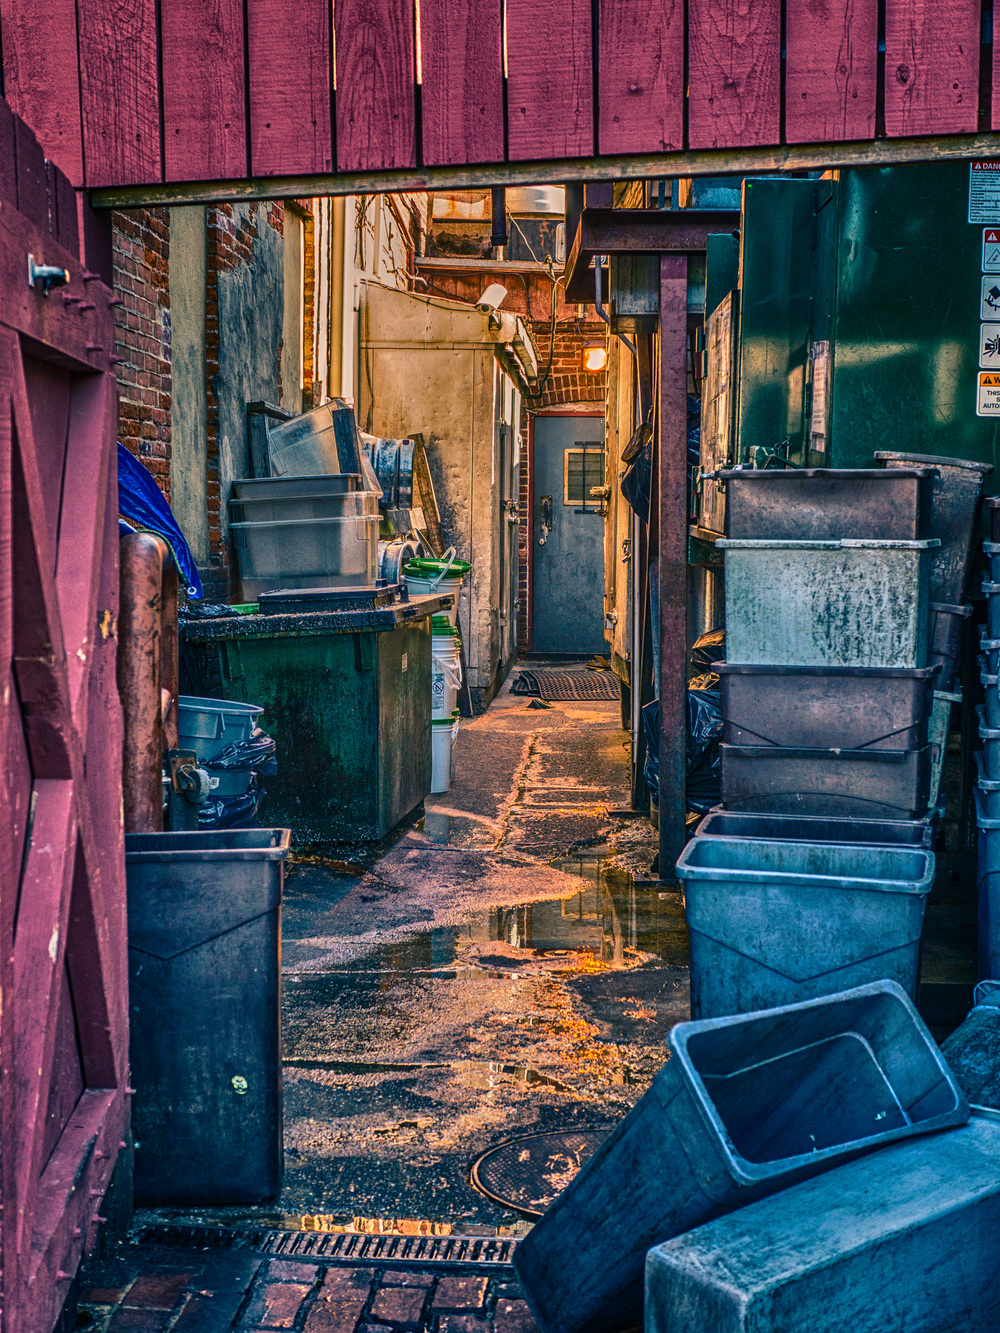 Dumpster Alley - Panasonic GH3, 25mm Summilux f/1.4 - ISO 200, f/4.0, 1/125sec